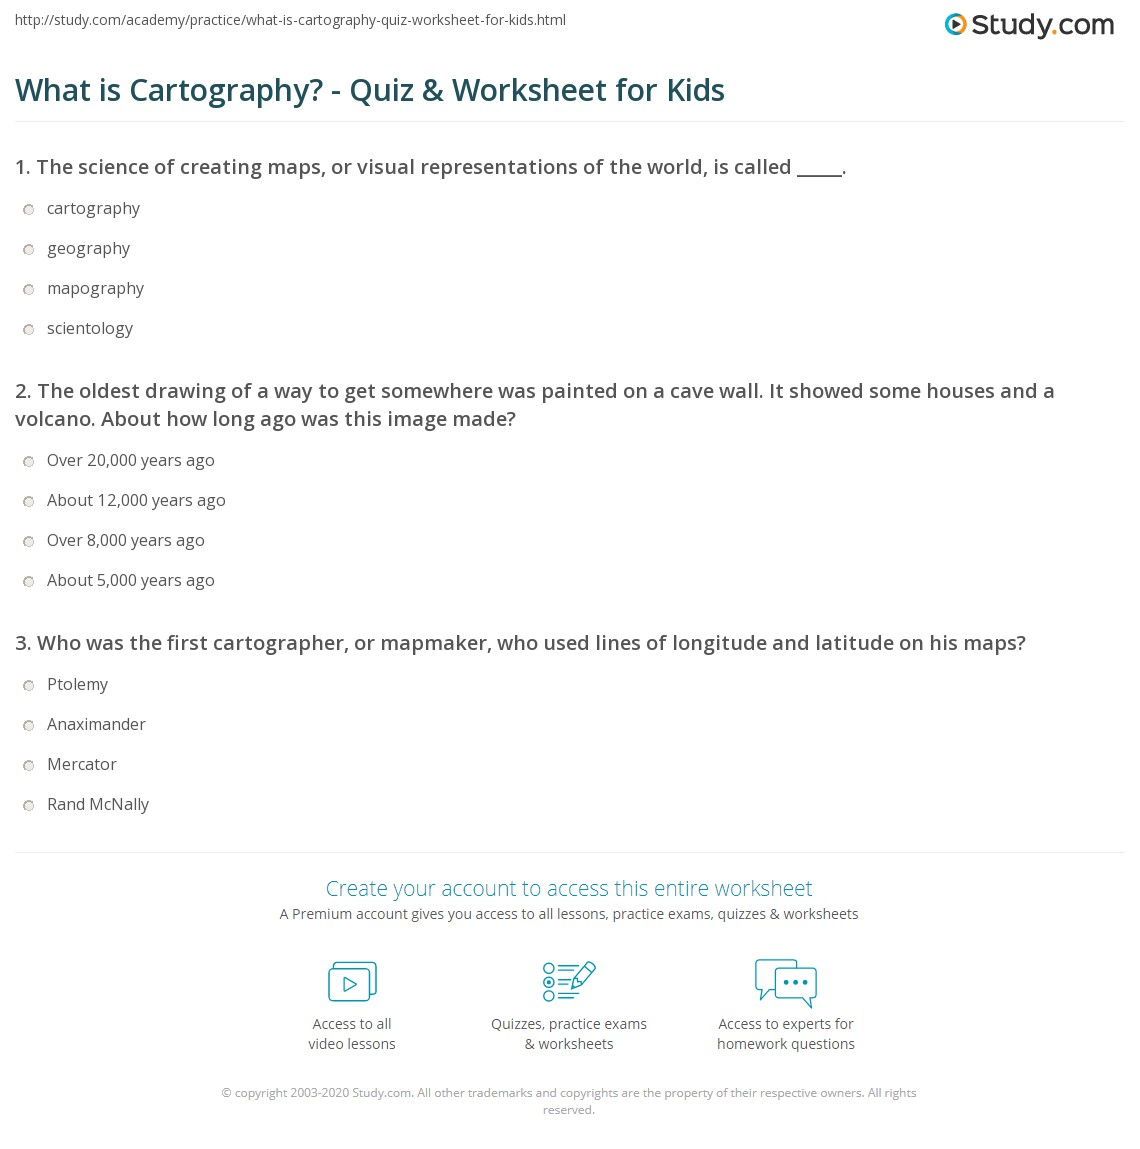 What is Cartography? - Quiz & Worksheet for Kids | Study com